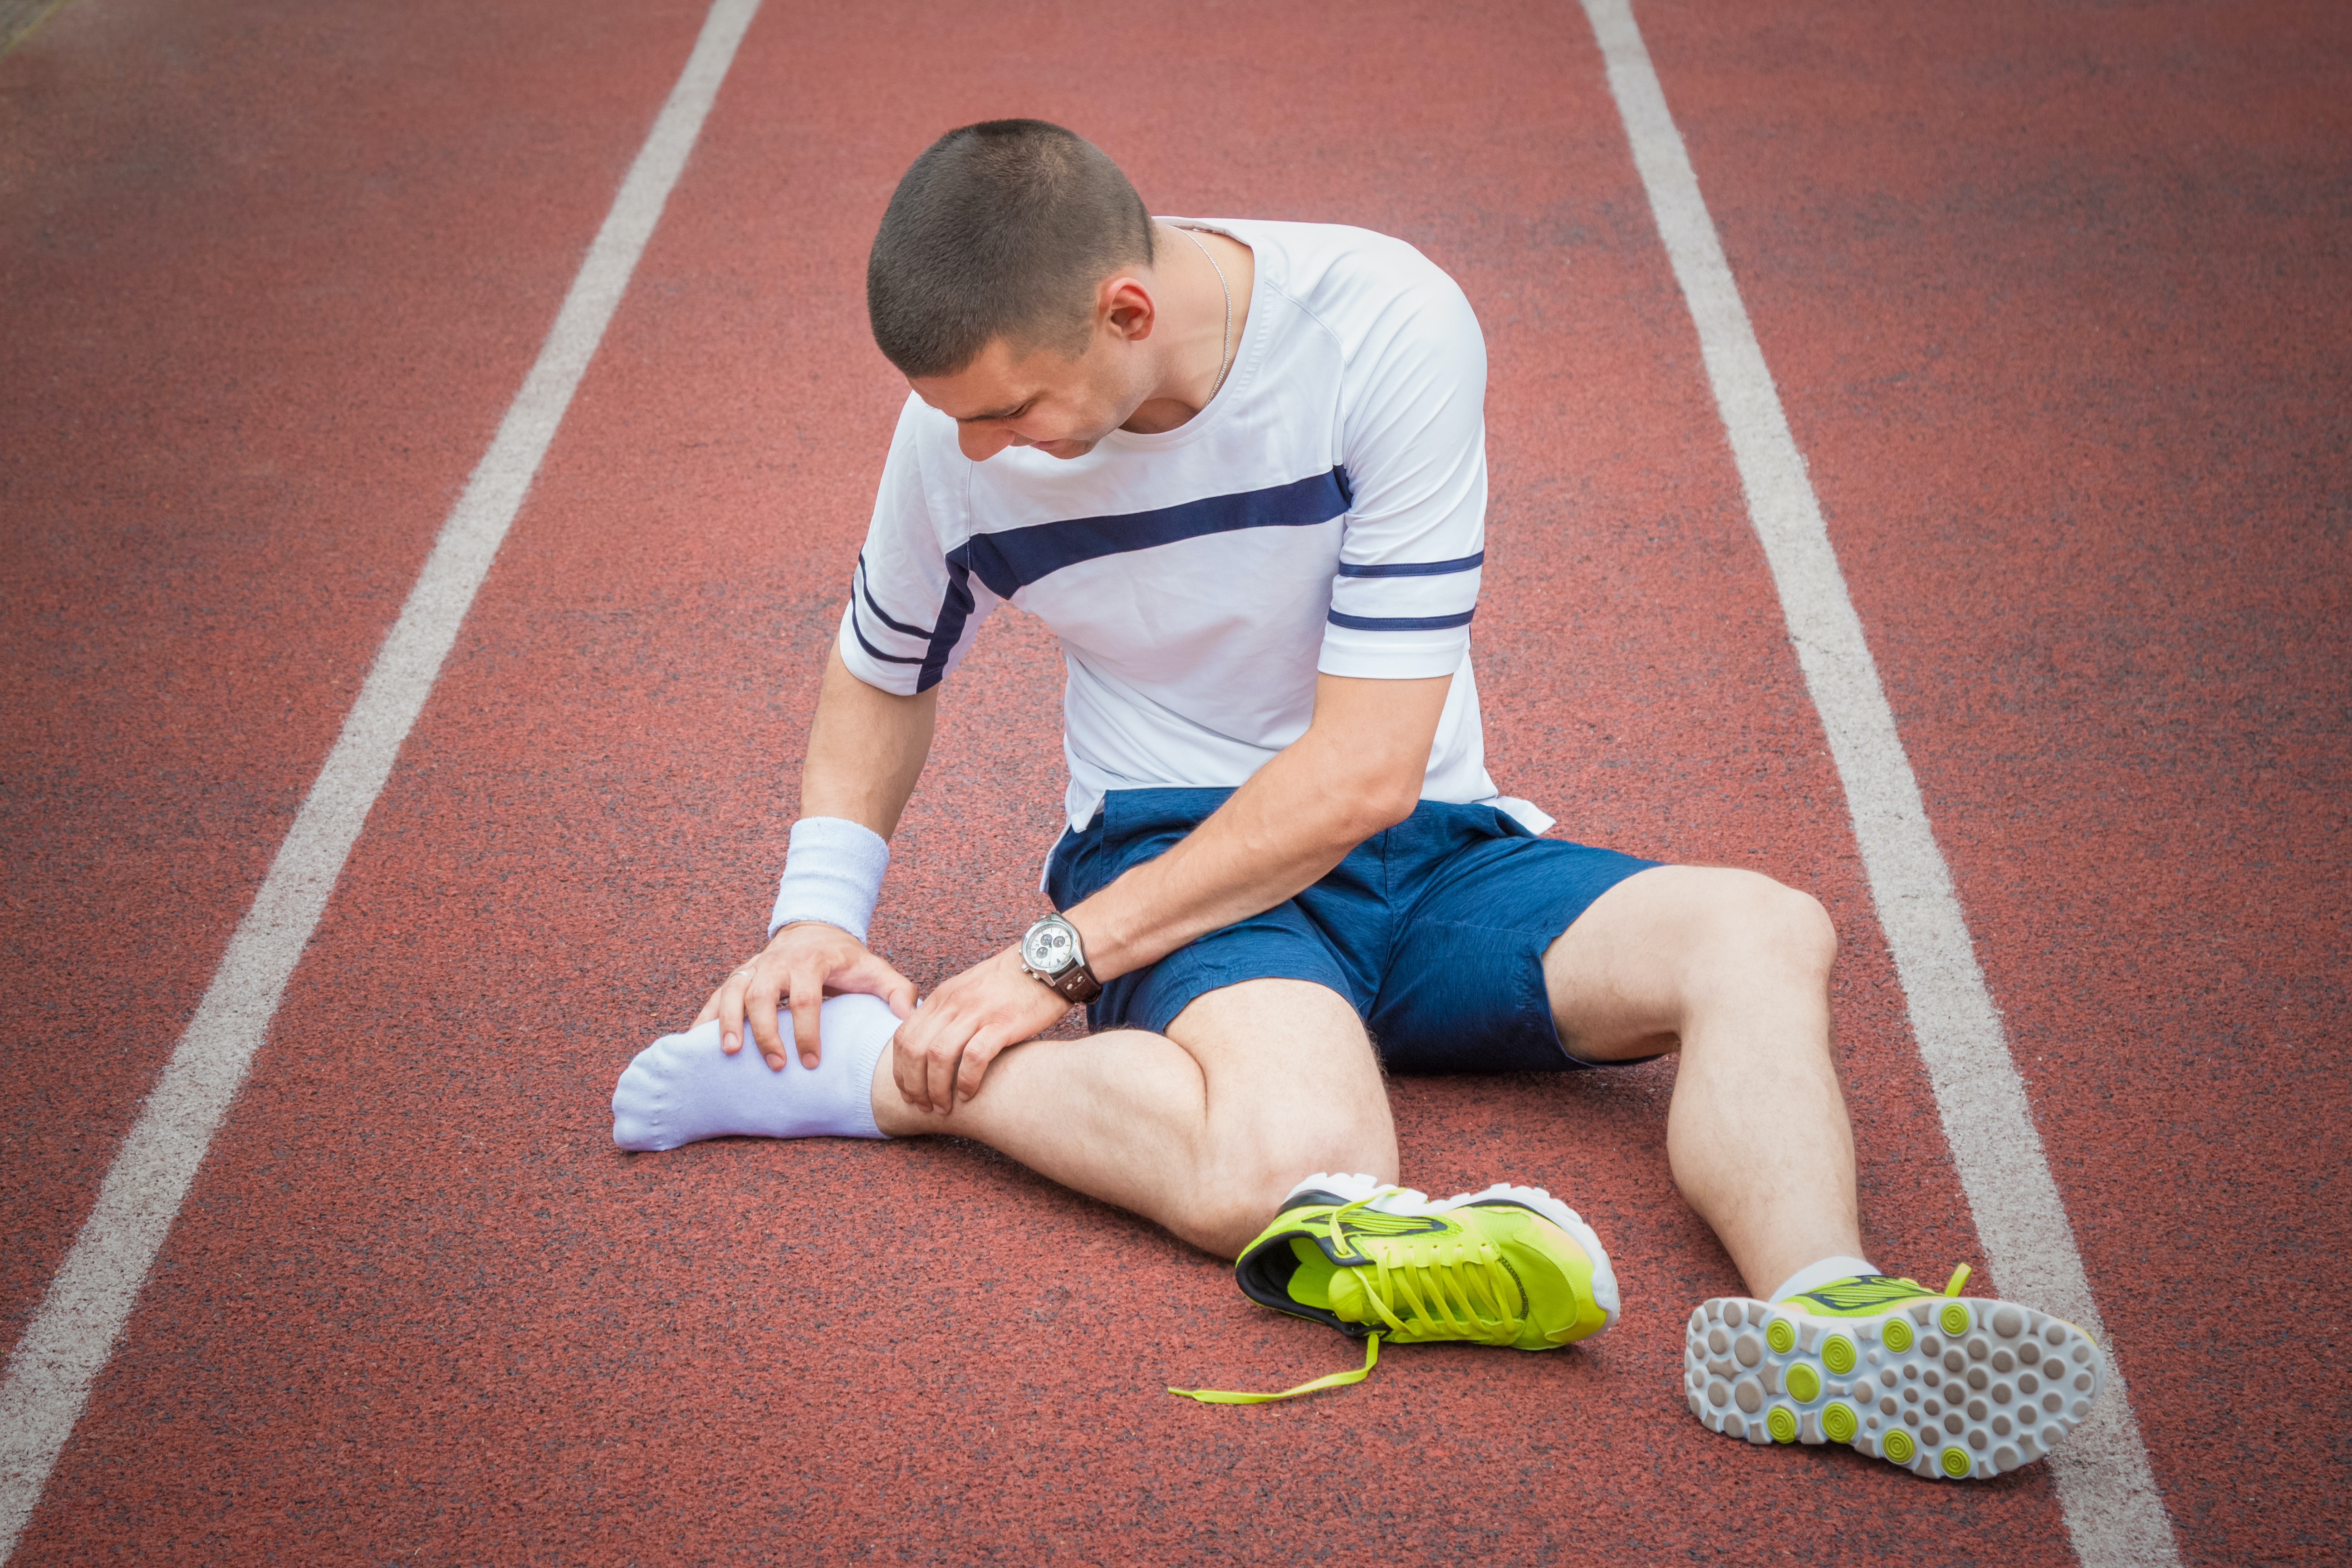 An image depicting a person suffering from severe ankle pain symptoms